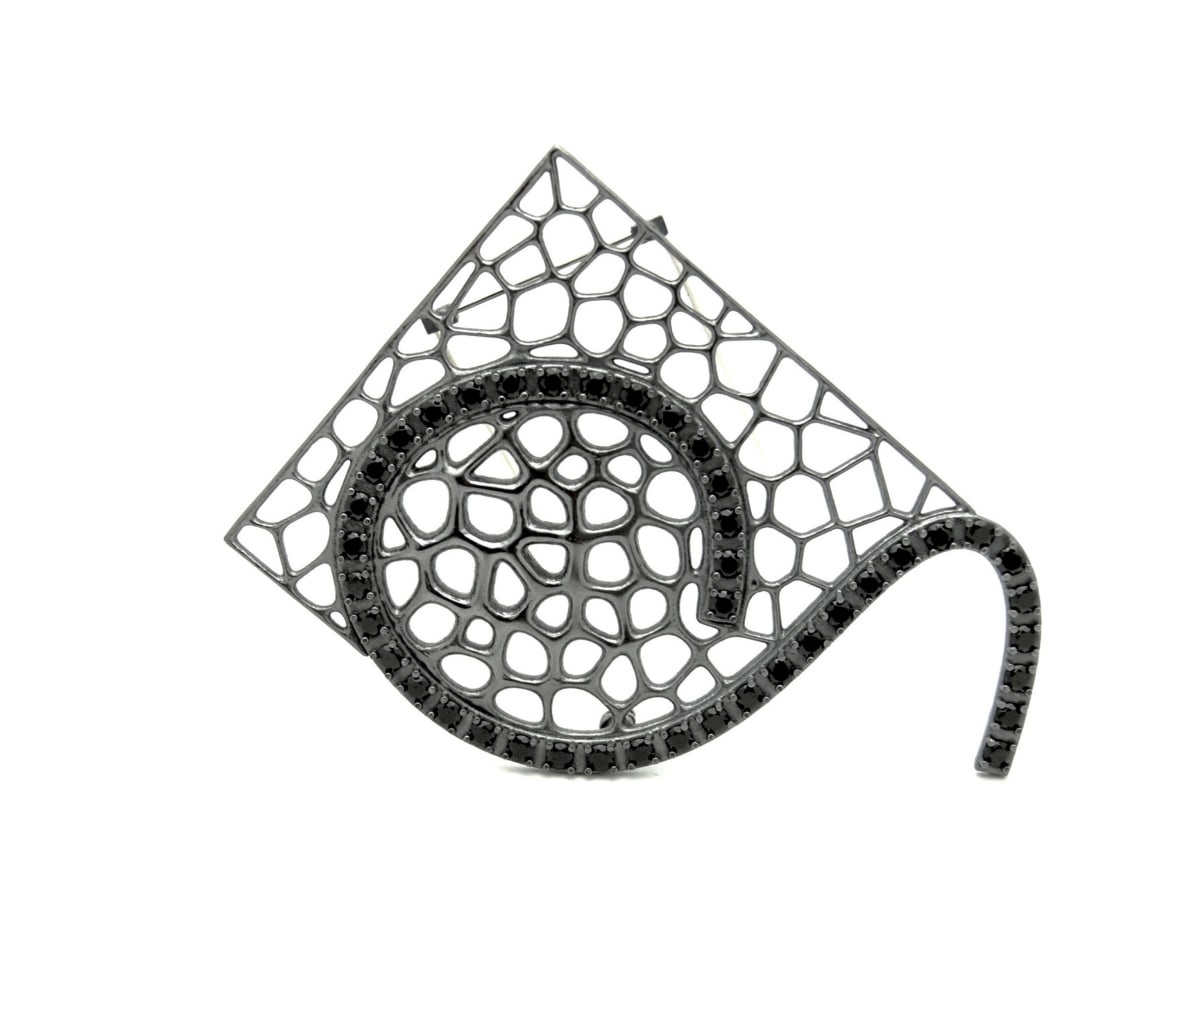 """Arthur Hash, Brooch """"Dots and Lines"""" series 2, 2016"""